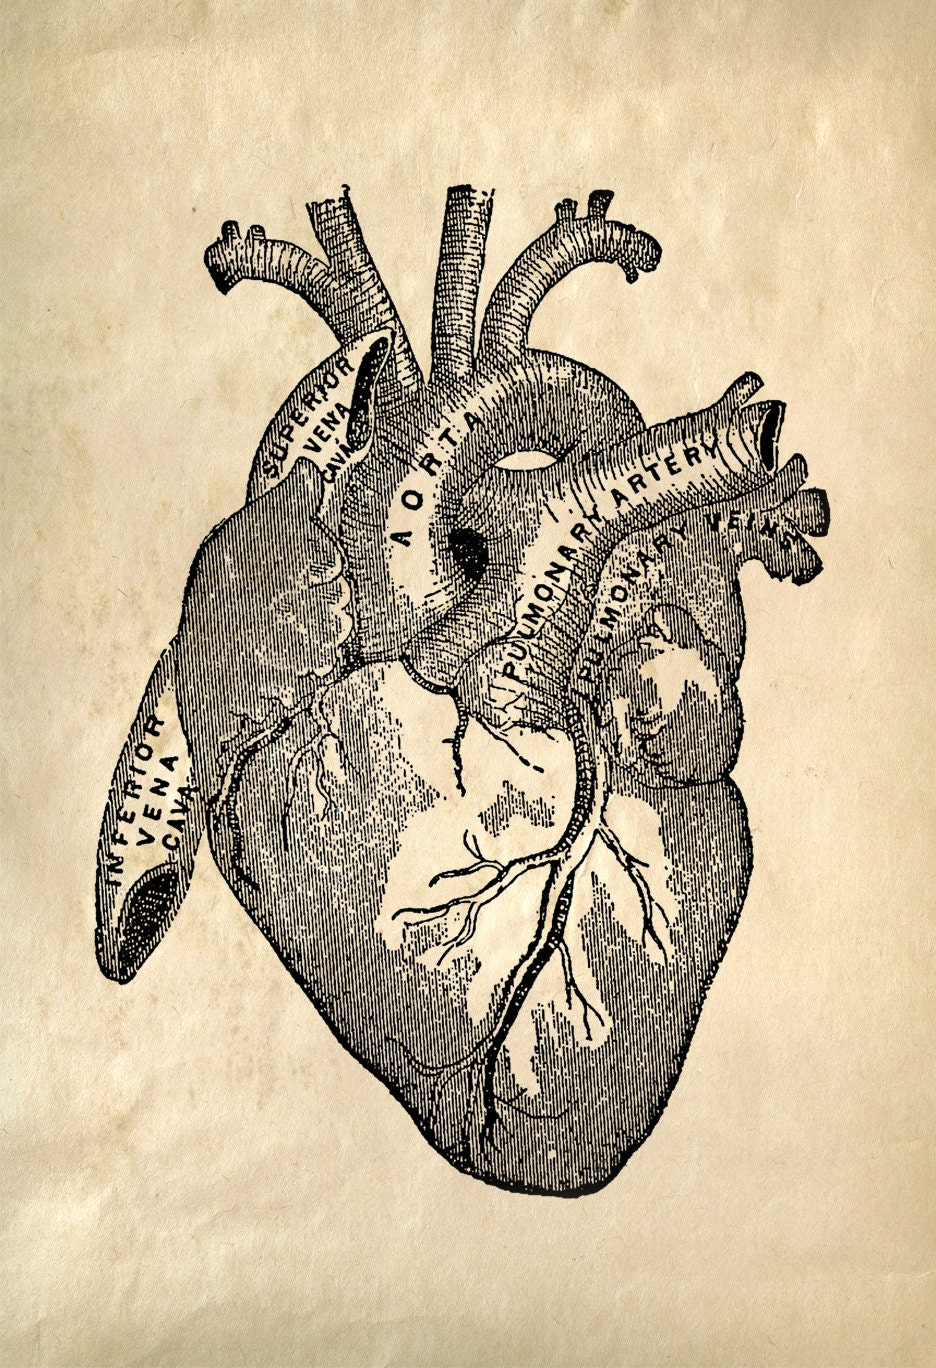 Human heart anatomy vintage - photo#14